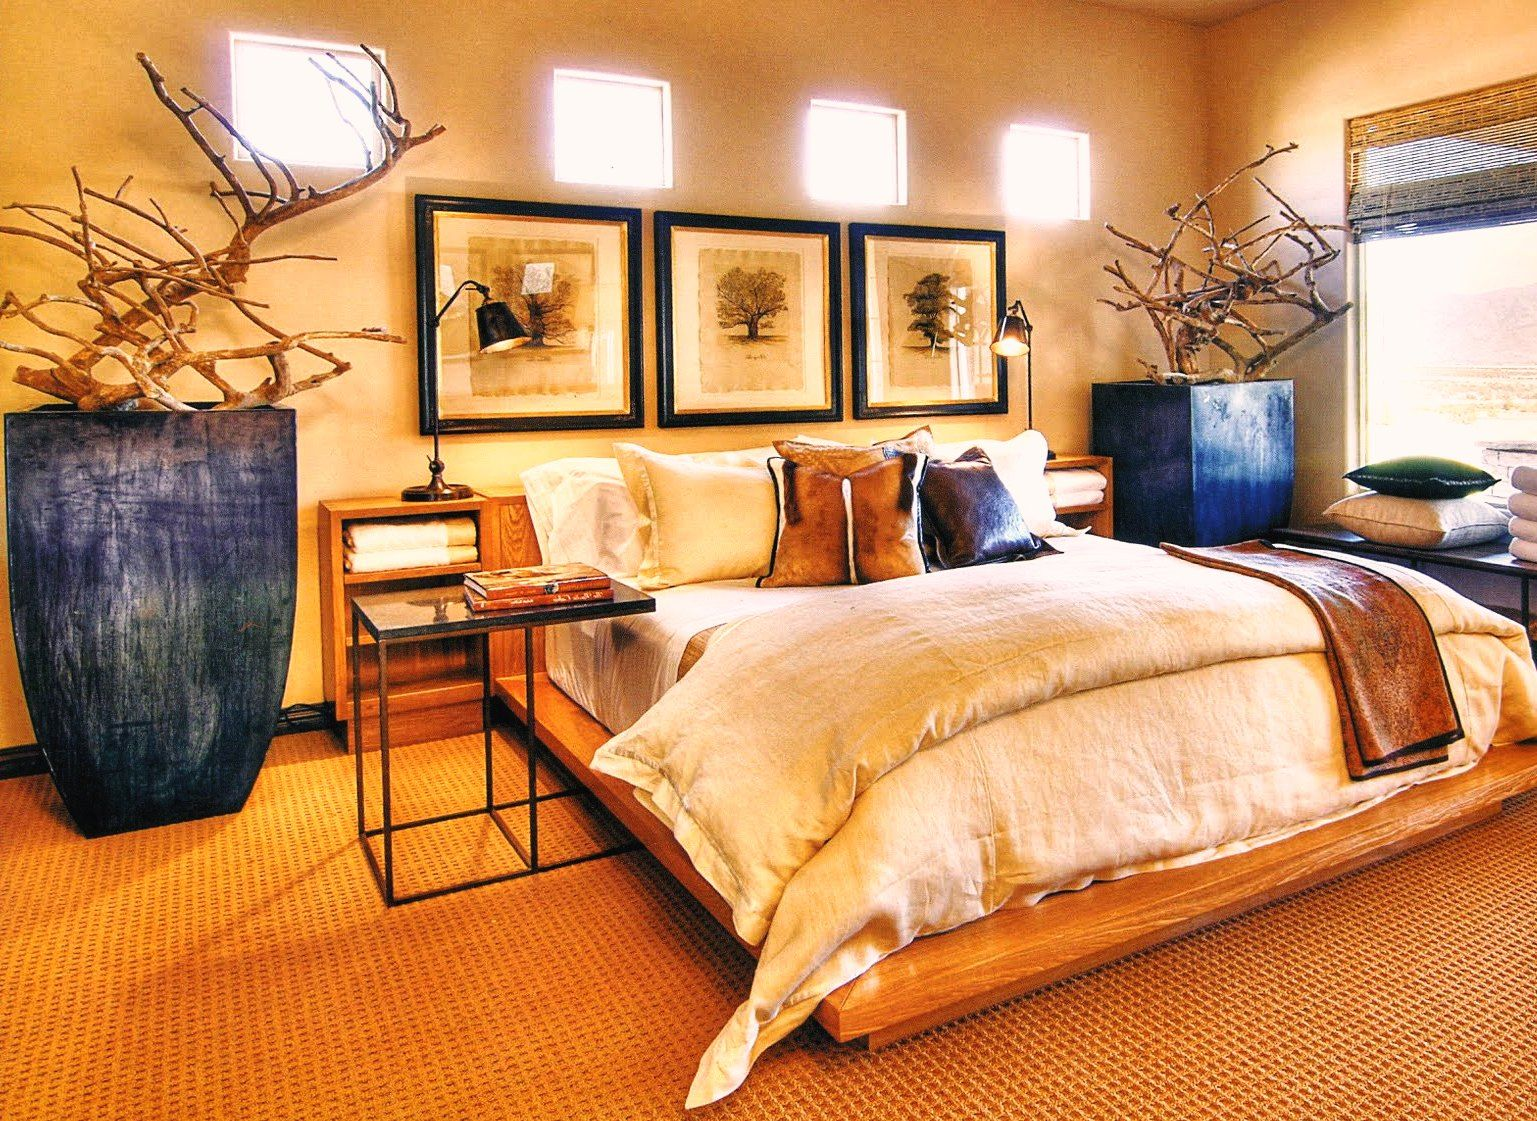 African bedrooms wallpaper find best latest african for African interior decoration